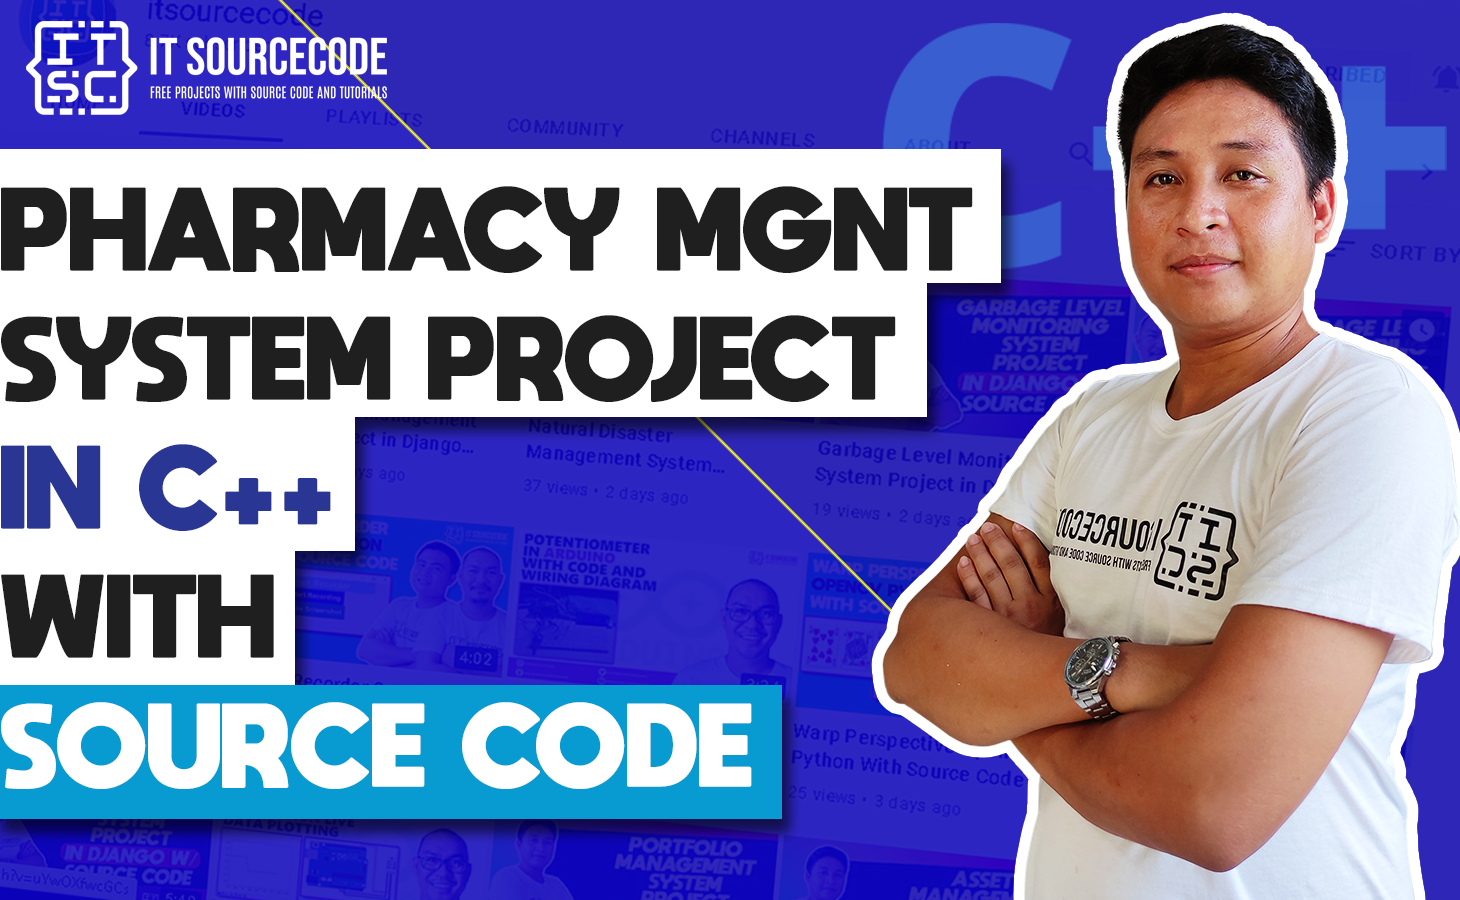 Pharmacy Management System Project in C++ with Source Code